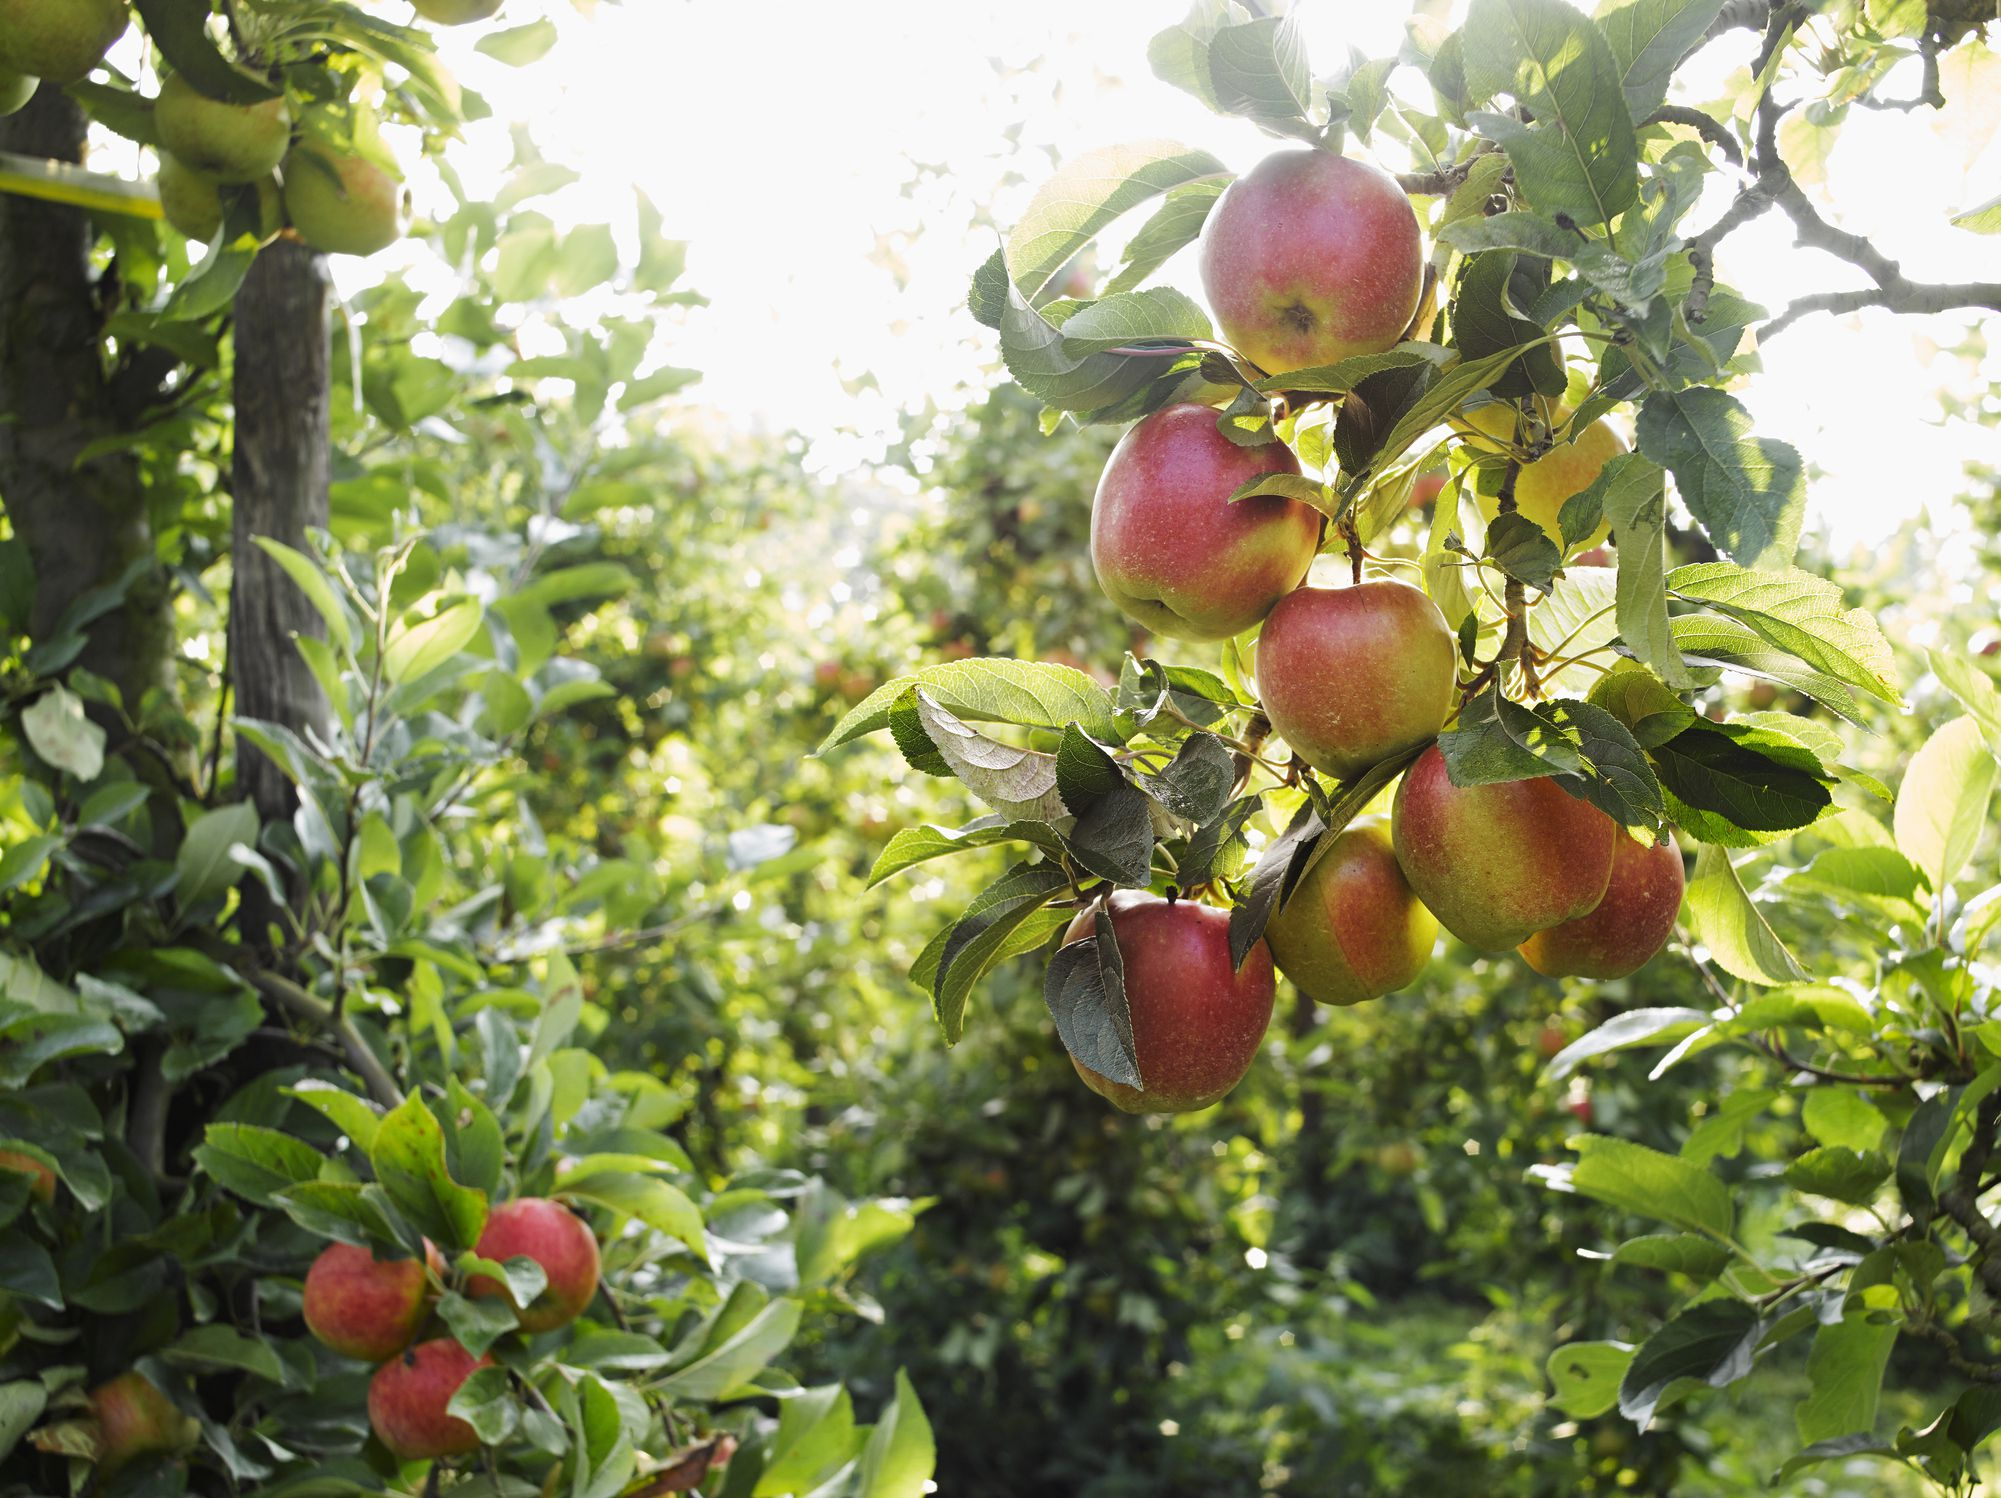 Apple Orchards Near Minneapolis and St. Paul neem oil uses